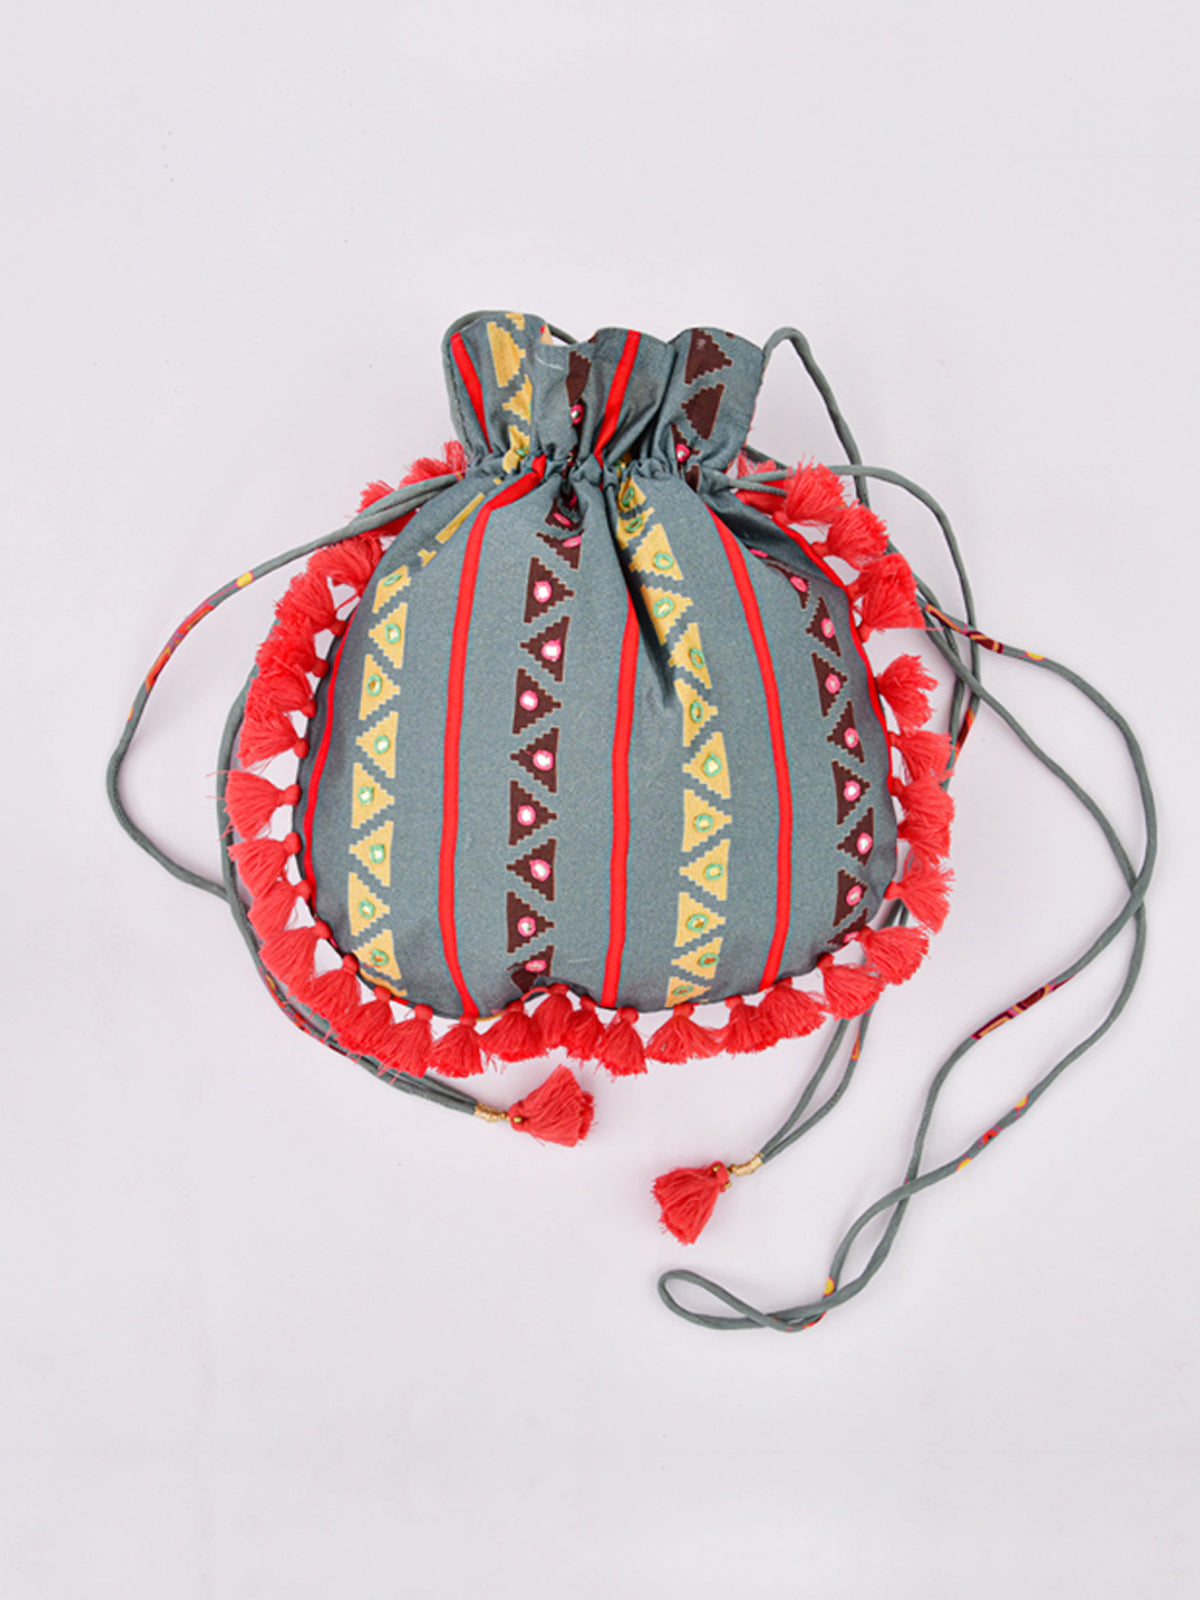 MORBAGH TRIBAL GREY EMBRODERED POTLI BAG WITH TASSELS